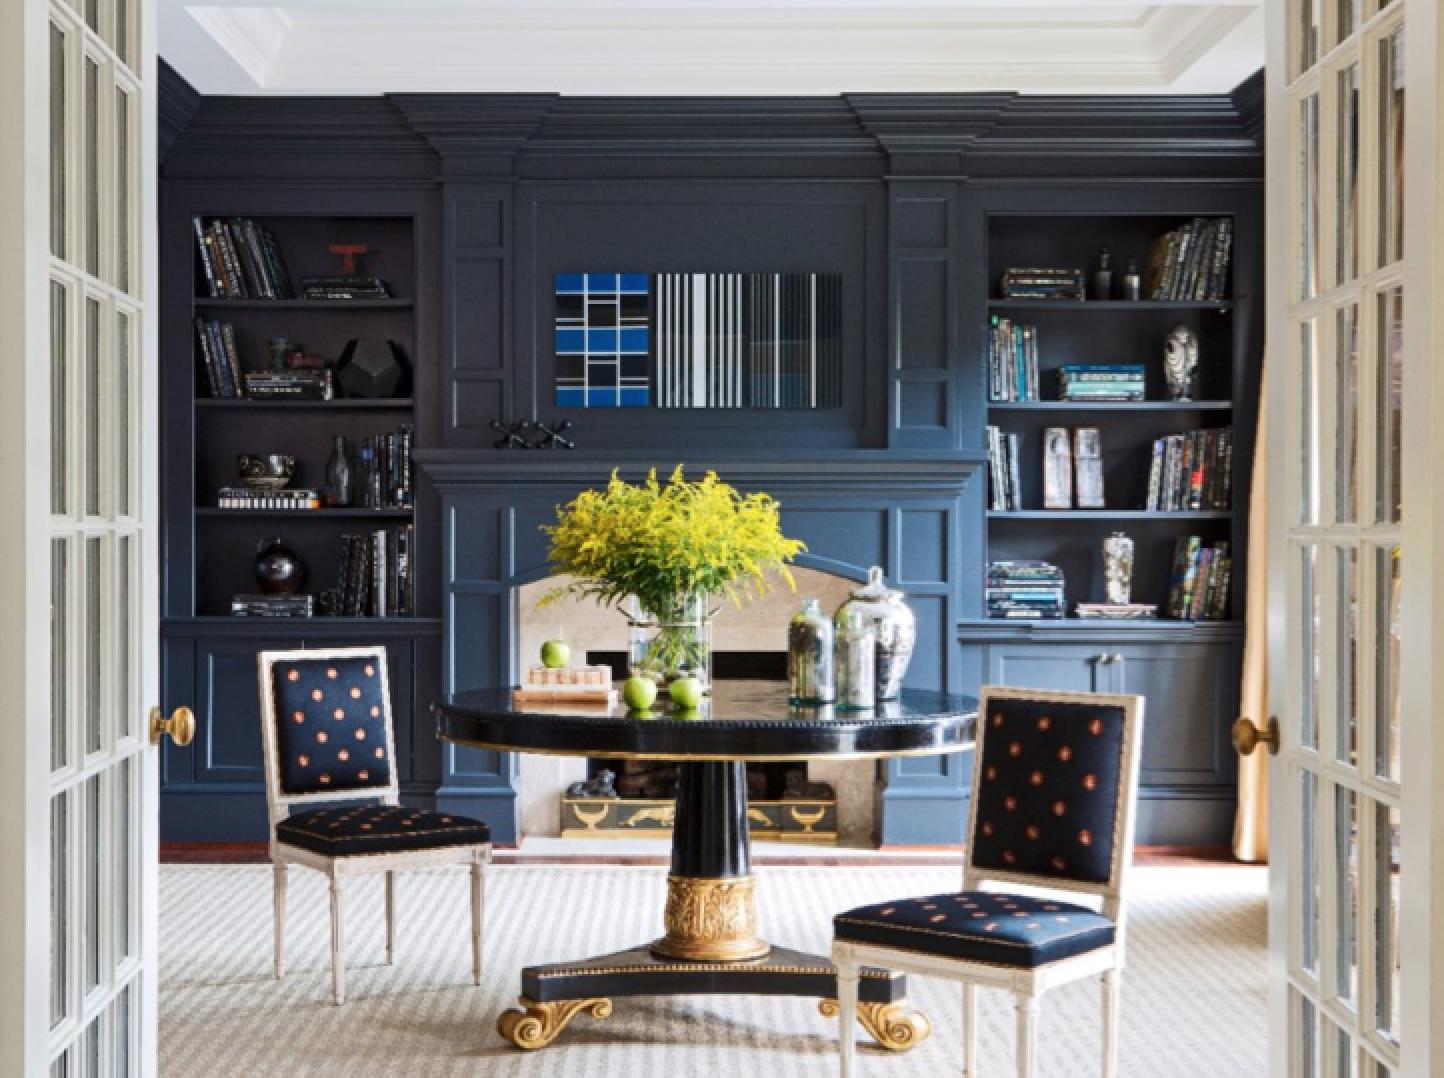 Painted Built Ins Amp Molding Via Tradhome Painted Built